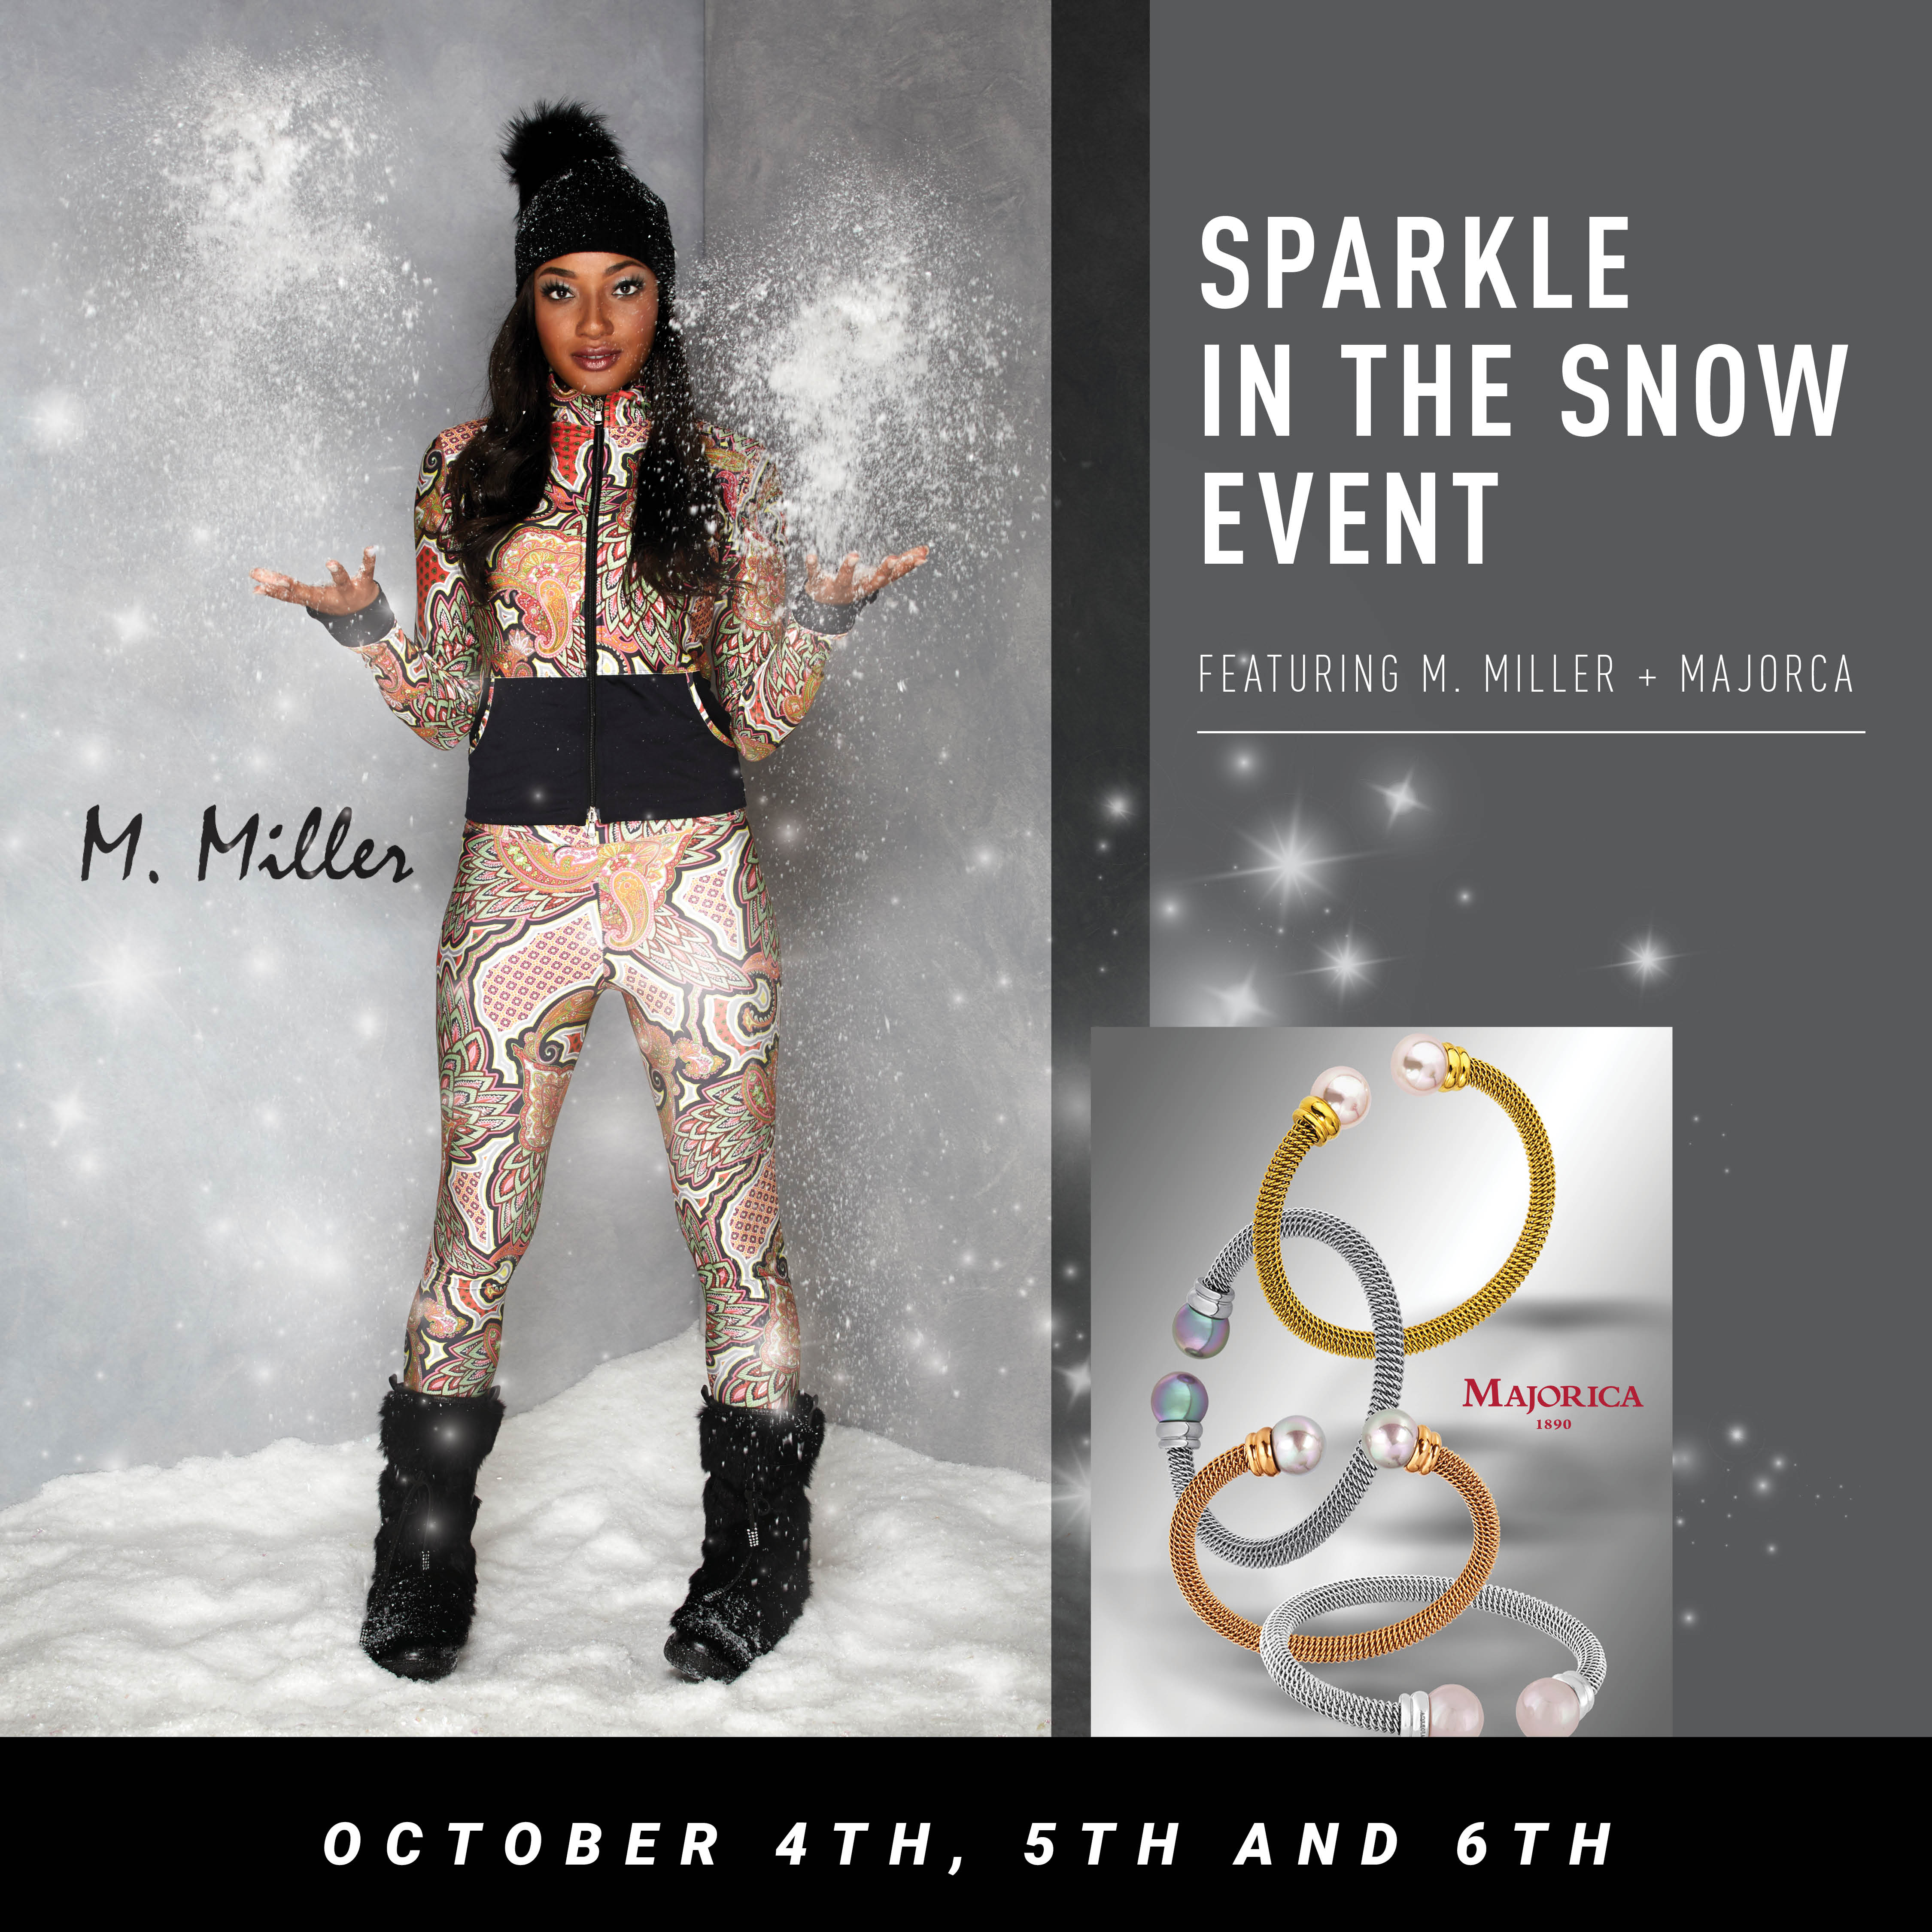 M. Miller + Majorica Fall Trunk Show October 4th, 5th and 6th